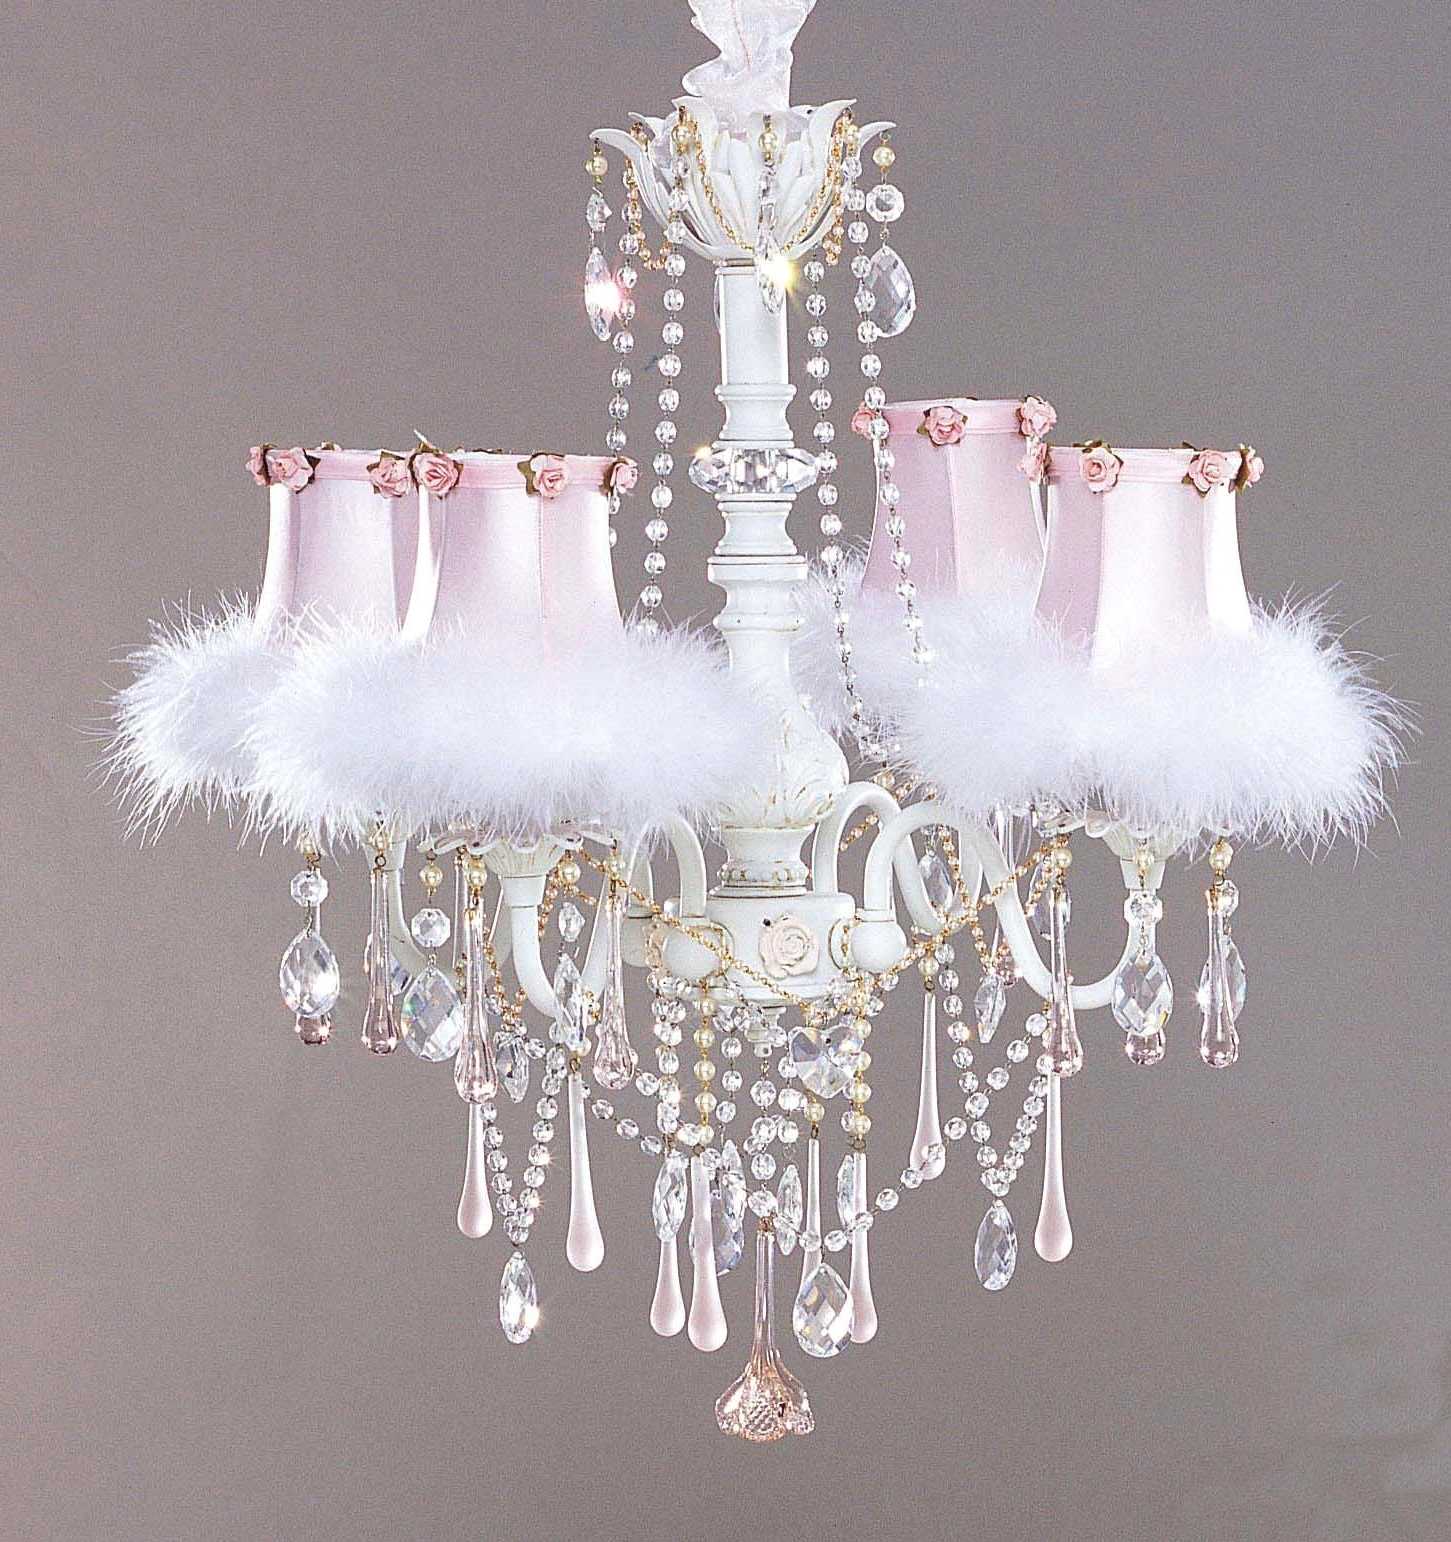 Favorite Chandeliers : Shabby Chic Chandelier Elegant Chandelier Small With Small Shabby Chic Chandelier (View 7 of 20)